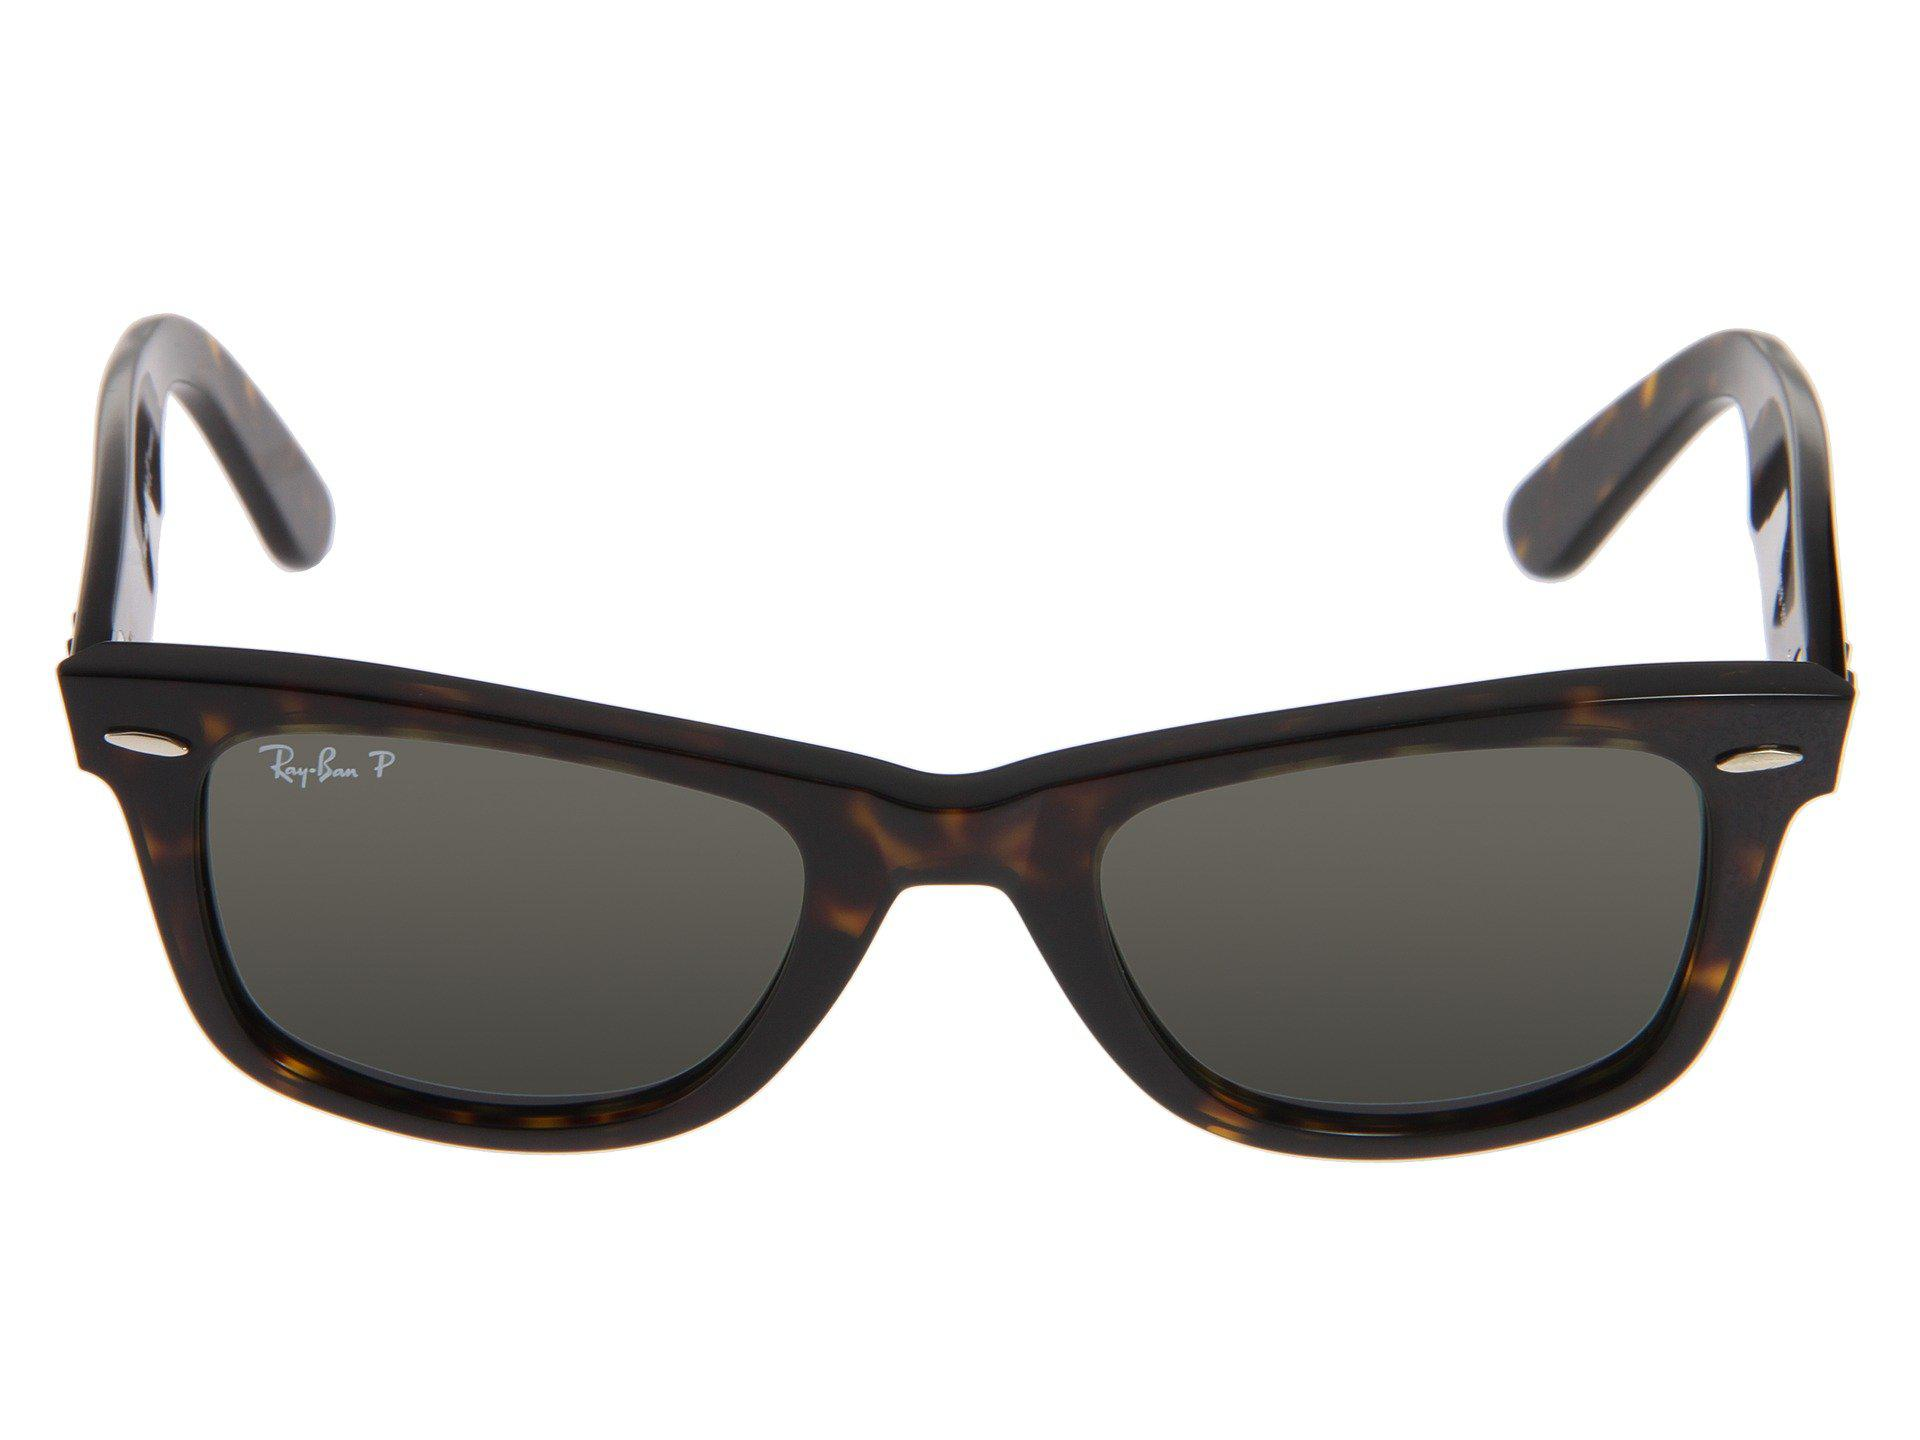 631c3bfc18 Ray-Ban - Brown Rb2140 Original Wayfarer Polarized (tortoise green  Polarized Lens). View fullscreen